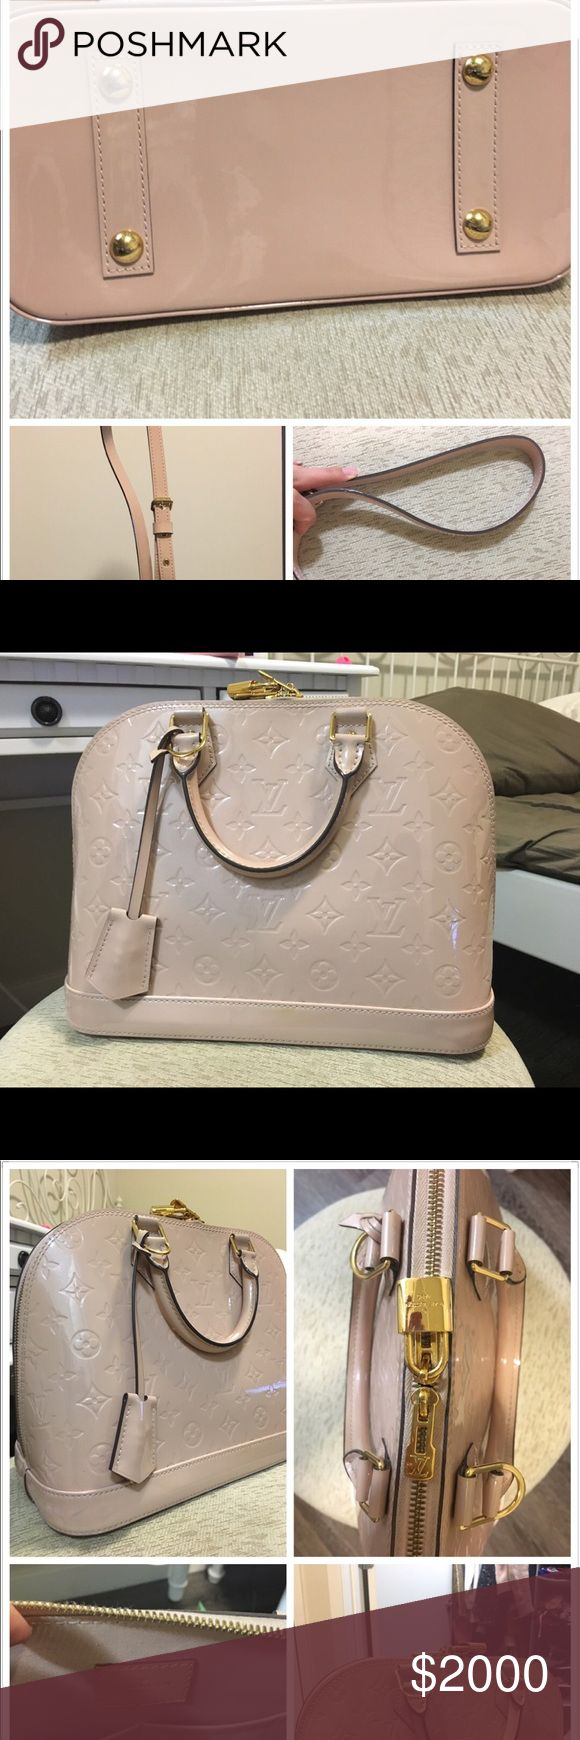 LV pink tote medium size LV bag with belt that I bought for extra 400 dollars  99%new only wear twice  Now on the official website it's price is 2450 plus belt extra 400dollars before tax Louis Vuitton Bags Totes